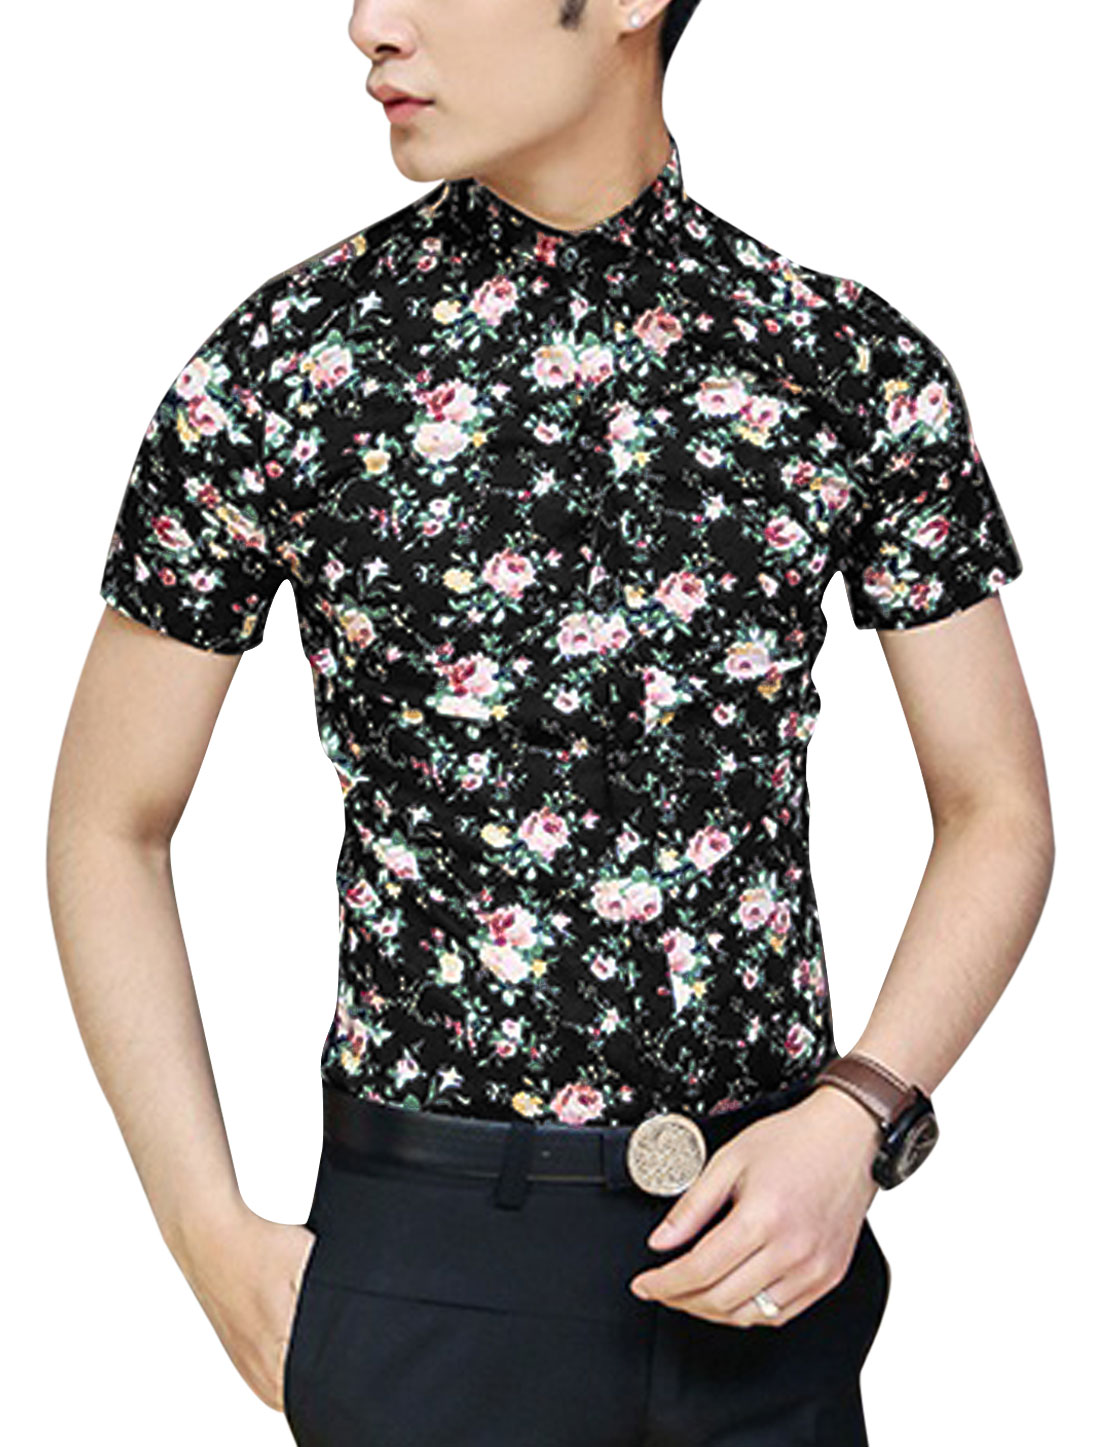 Men Point Collar Short Sleeve Button Down Floral Prints Summer Shirt Black S